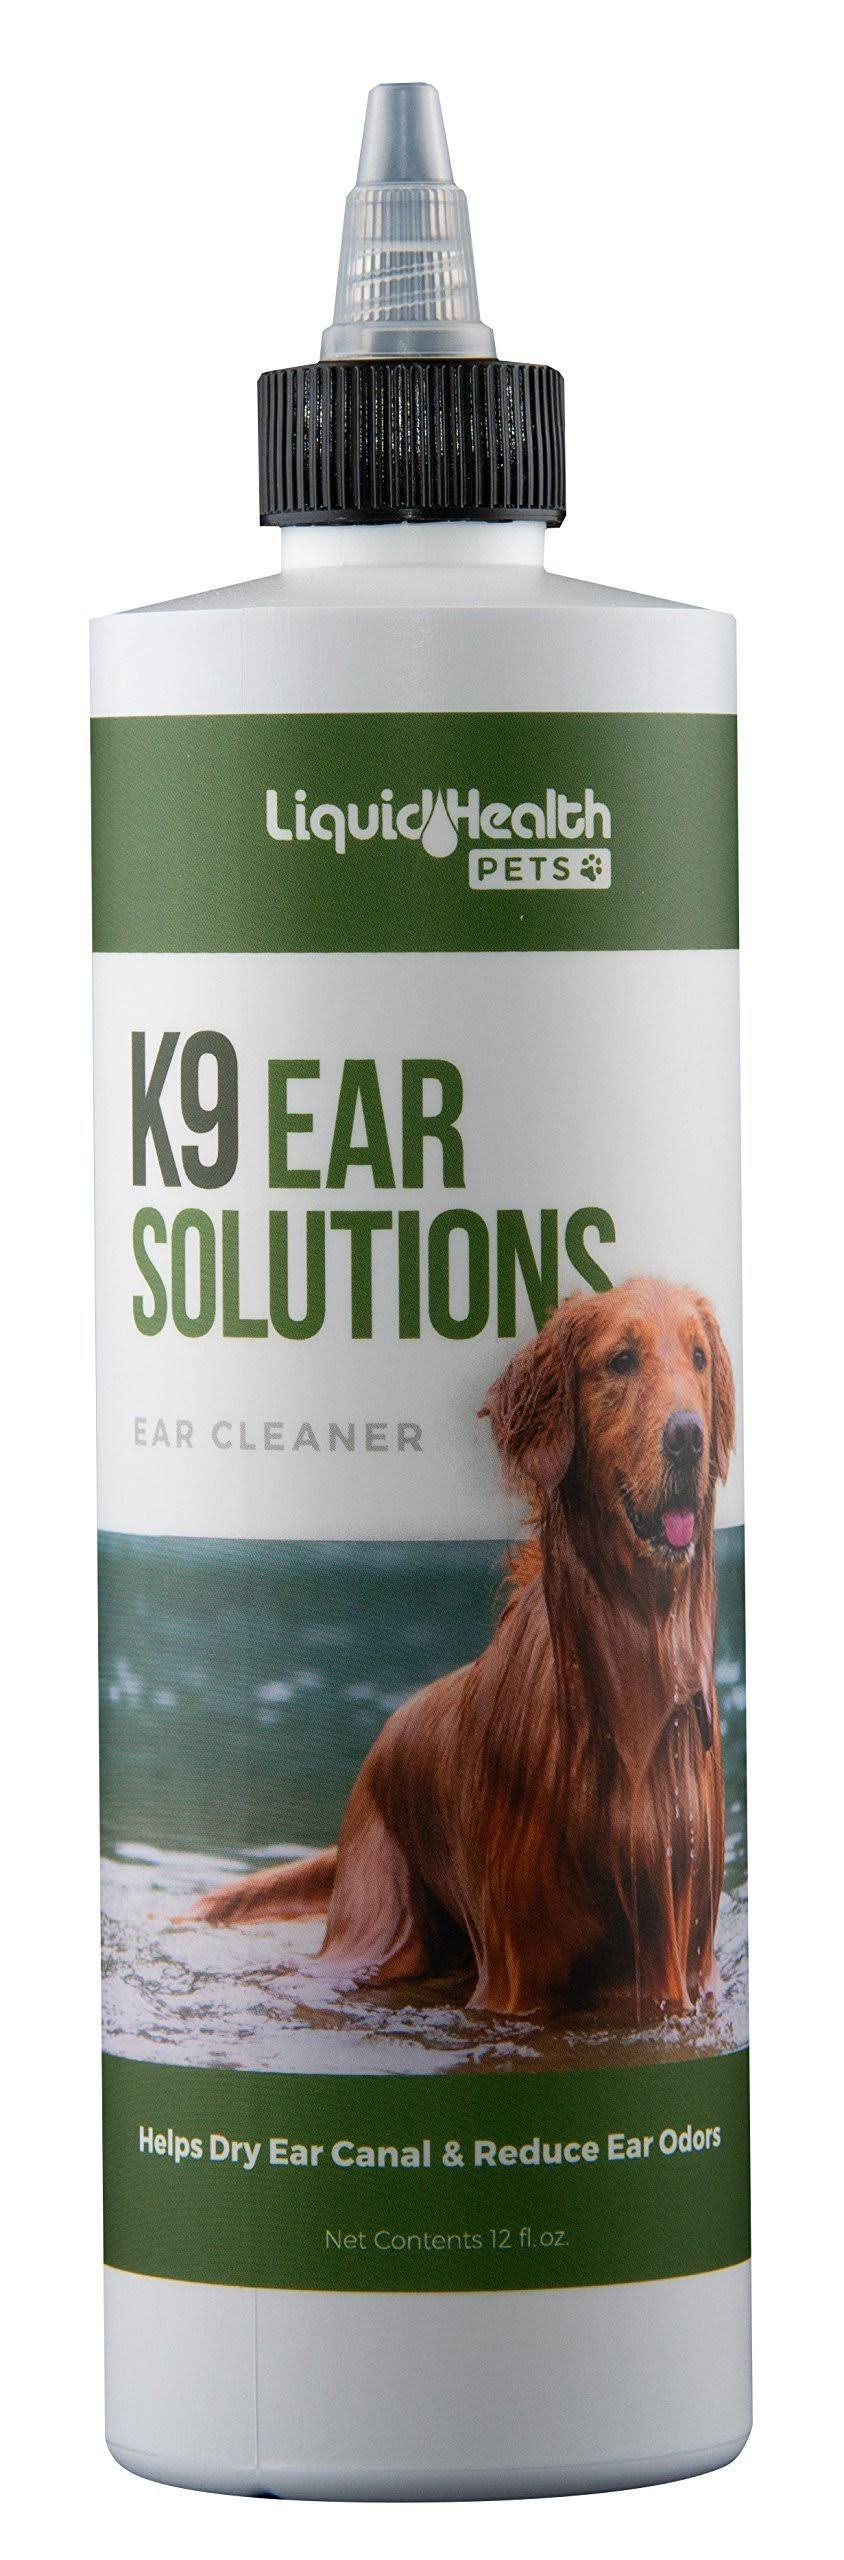 For Animals K9 Ear Solutions Liquid Health